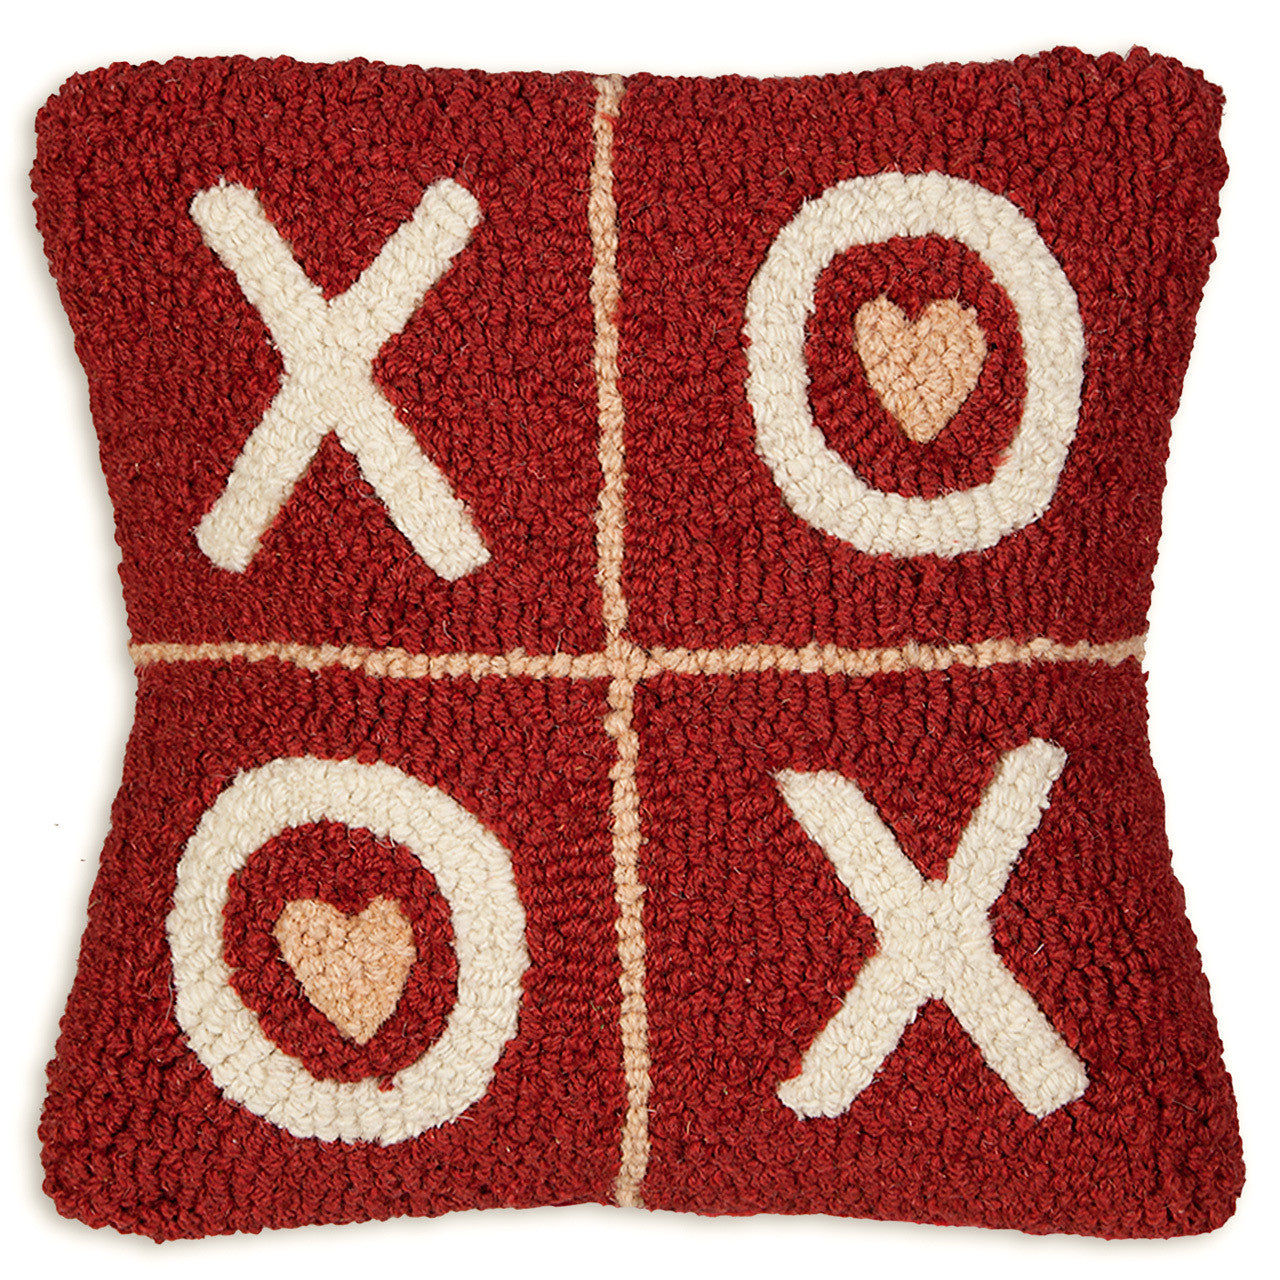 xoxo furniture. XOXO Hooked Pillow Xoxo Furniture E